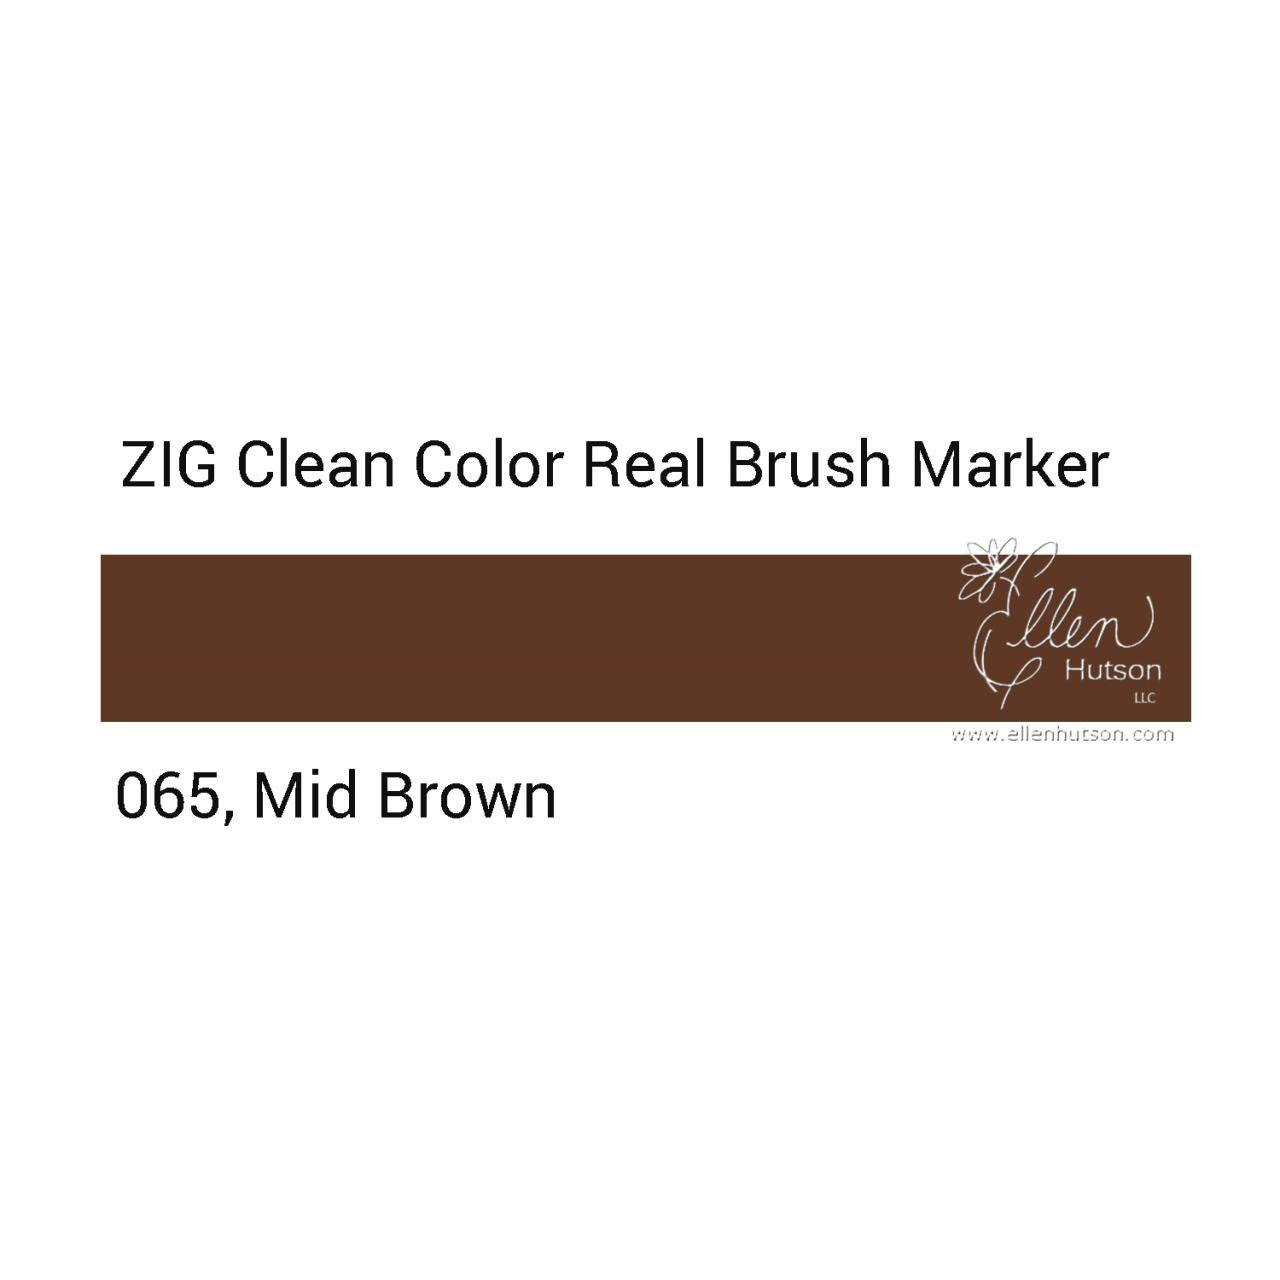 065 - Mid Brown, ZIG Clean Color Real Brush Marker -